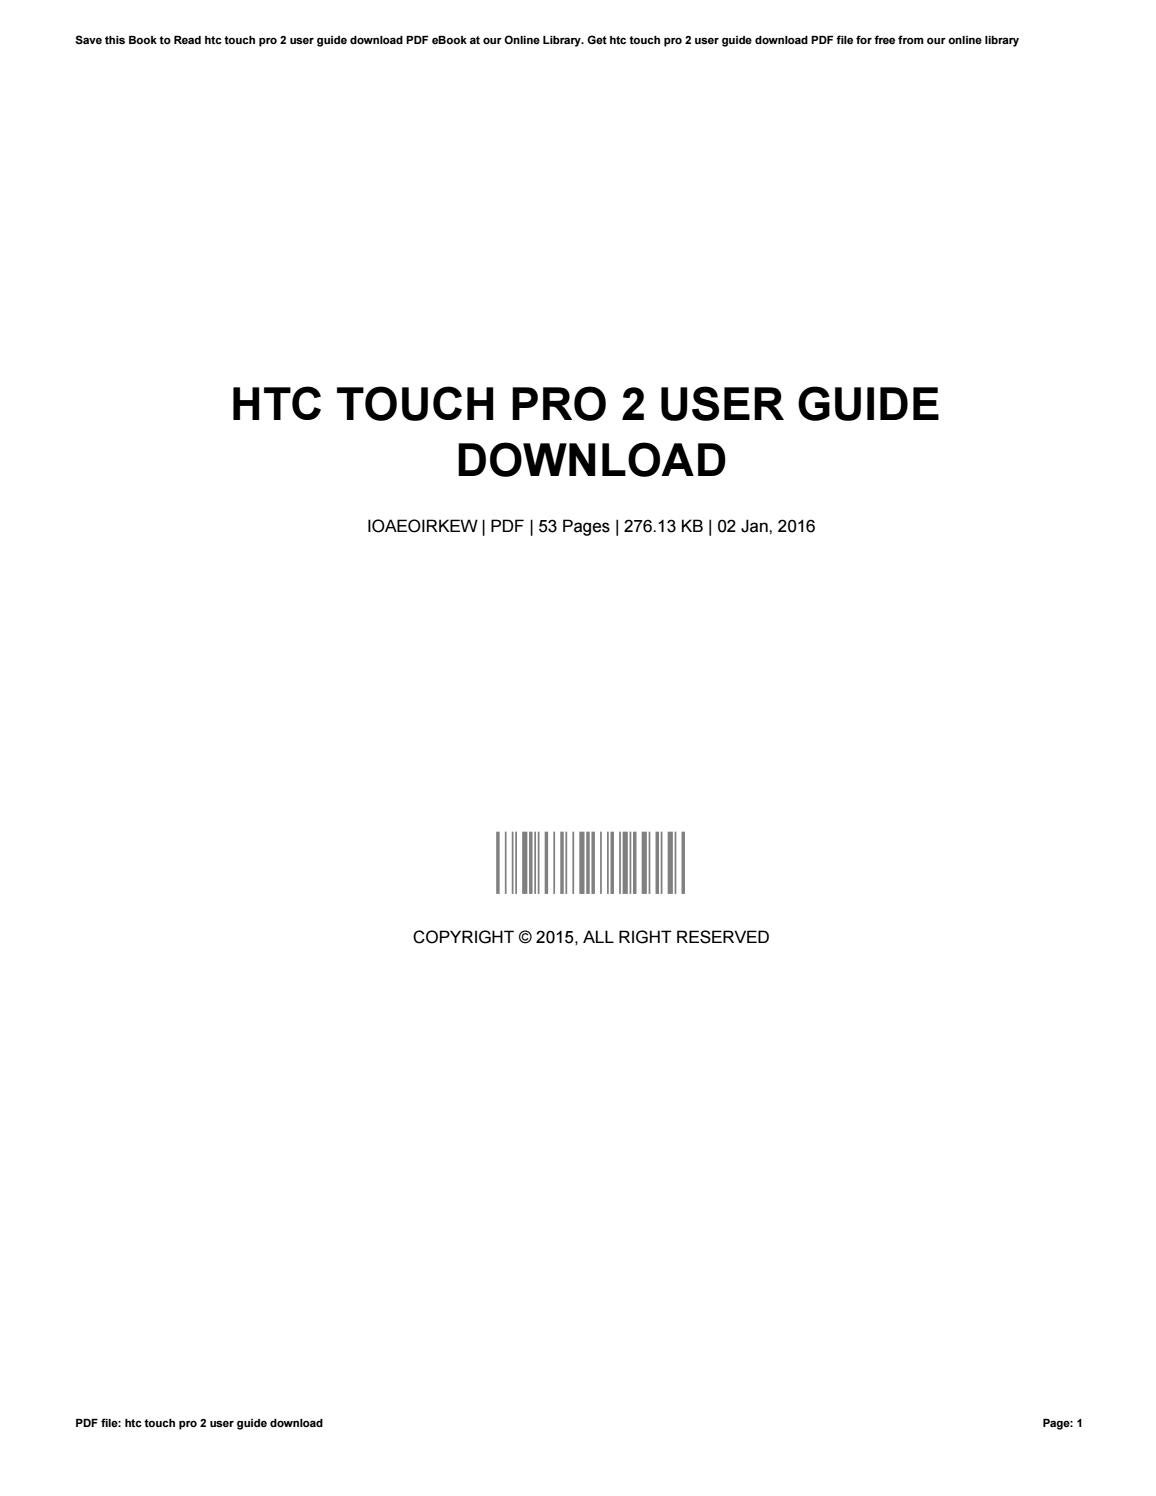 Htc touch pro 2 owners manual.